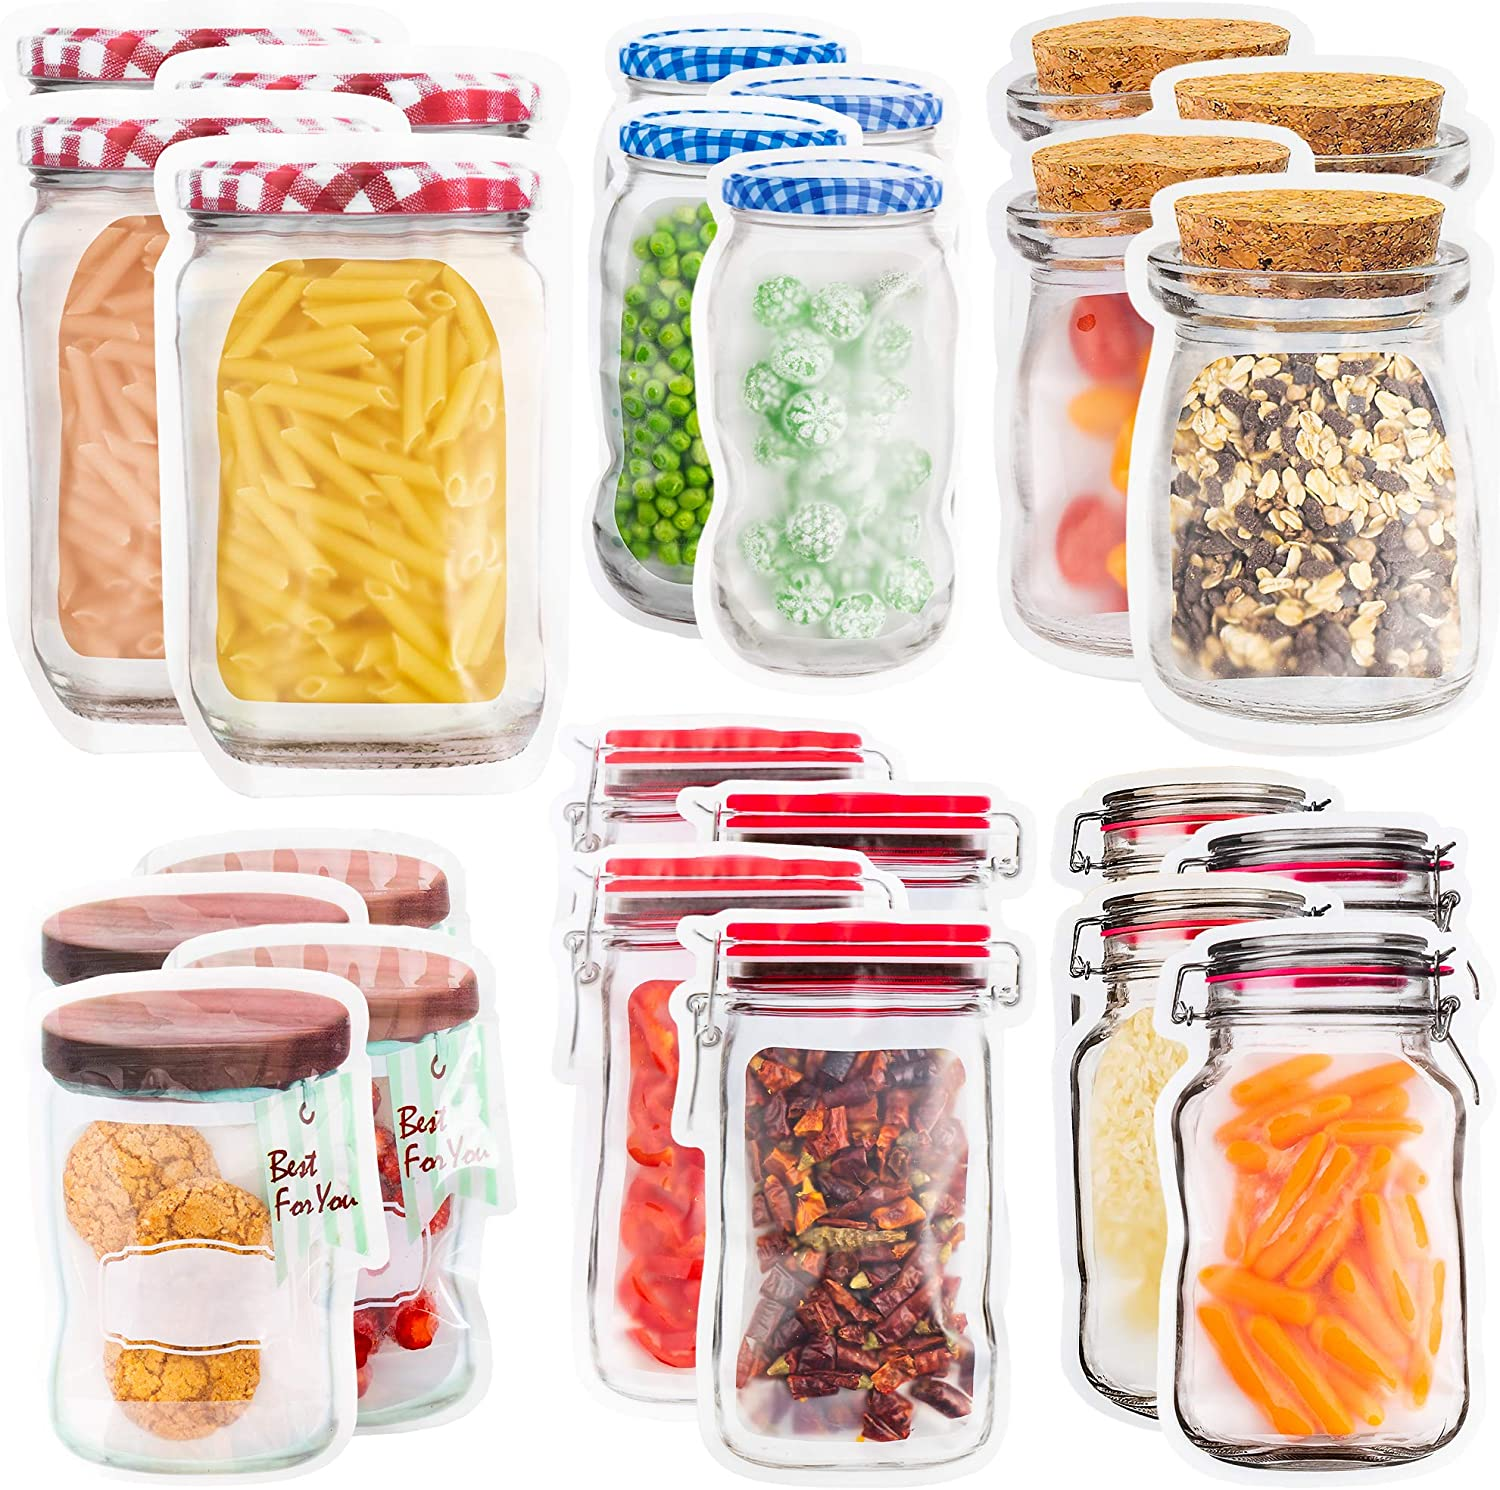 24 Mason Jar Zipper Bags Storage - for Food Snack Sandwich - Reusable Airtight Seal Food Bag Leak-Proof for Travel Camping or Kids - Reusable Resealable Ziplock Bottles Shaped Baggies